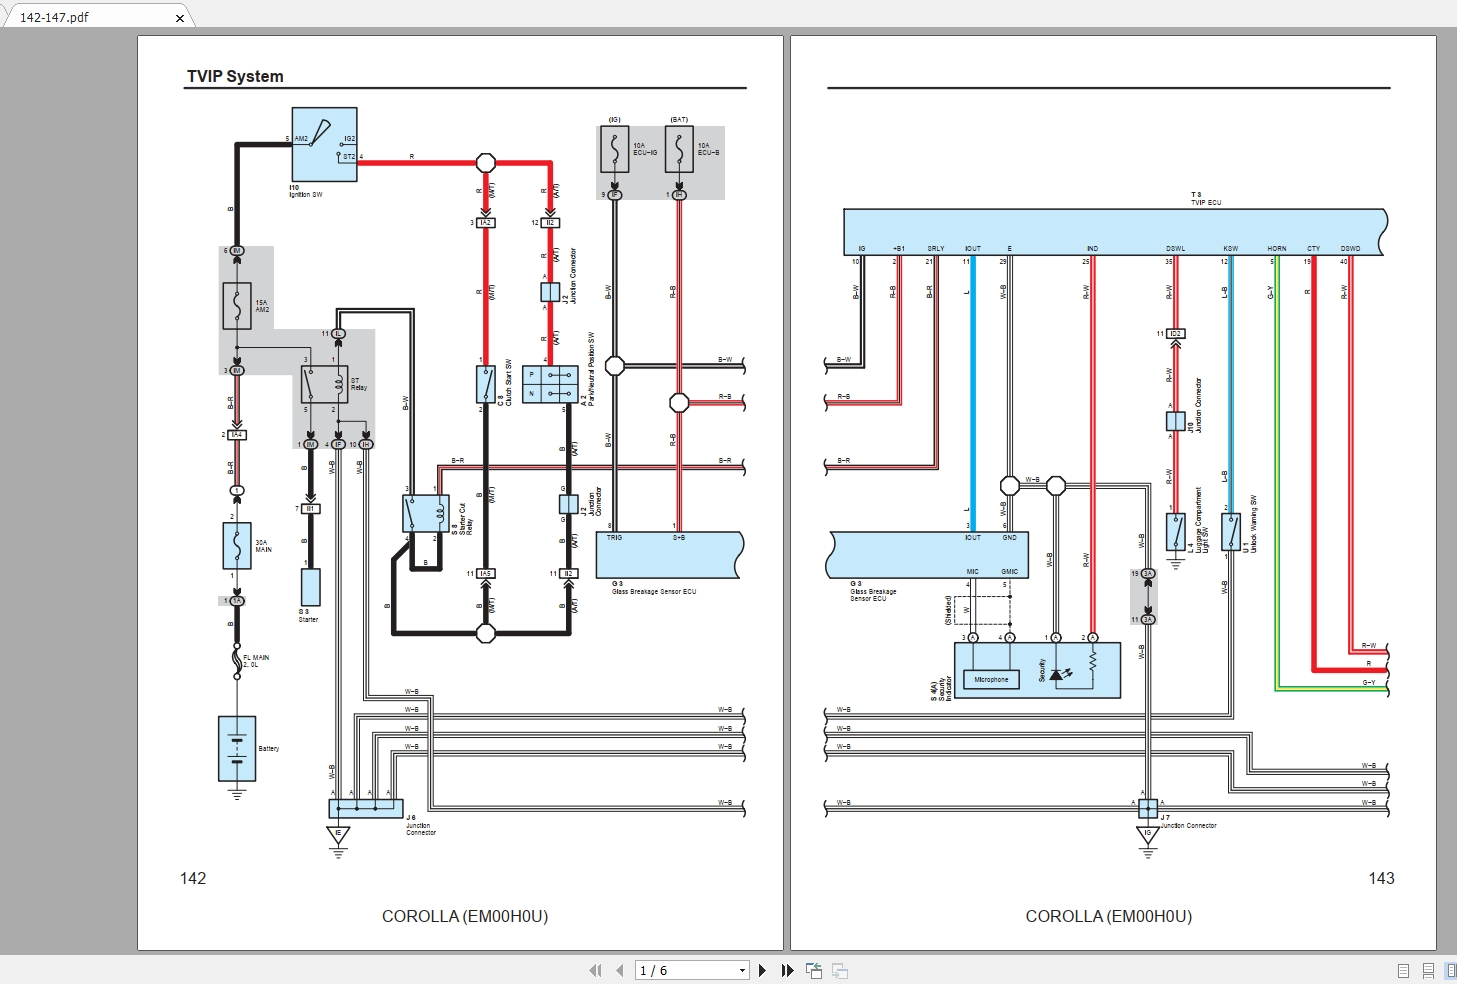 Wiring Diagram For 2006 Toyota Corolla - Wiring Diagram Overview  layout-halt - layout-halt.aigaravenna.itdiagram database - aigaravenna.it